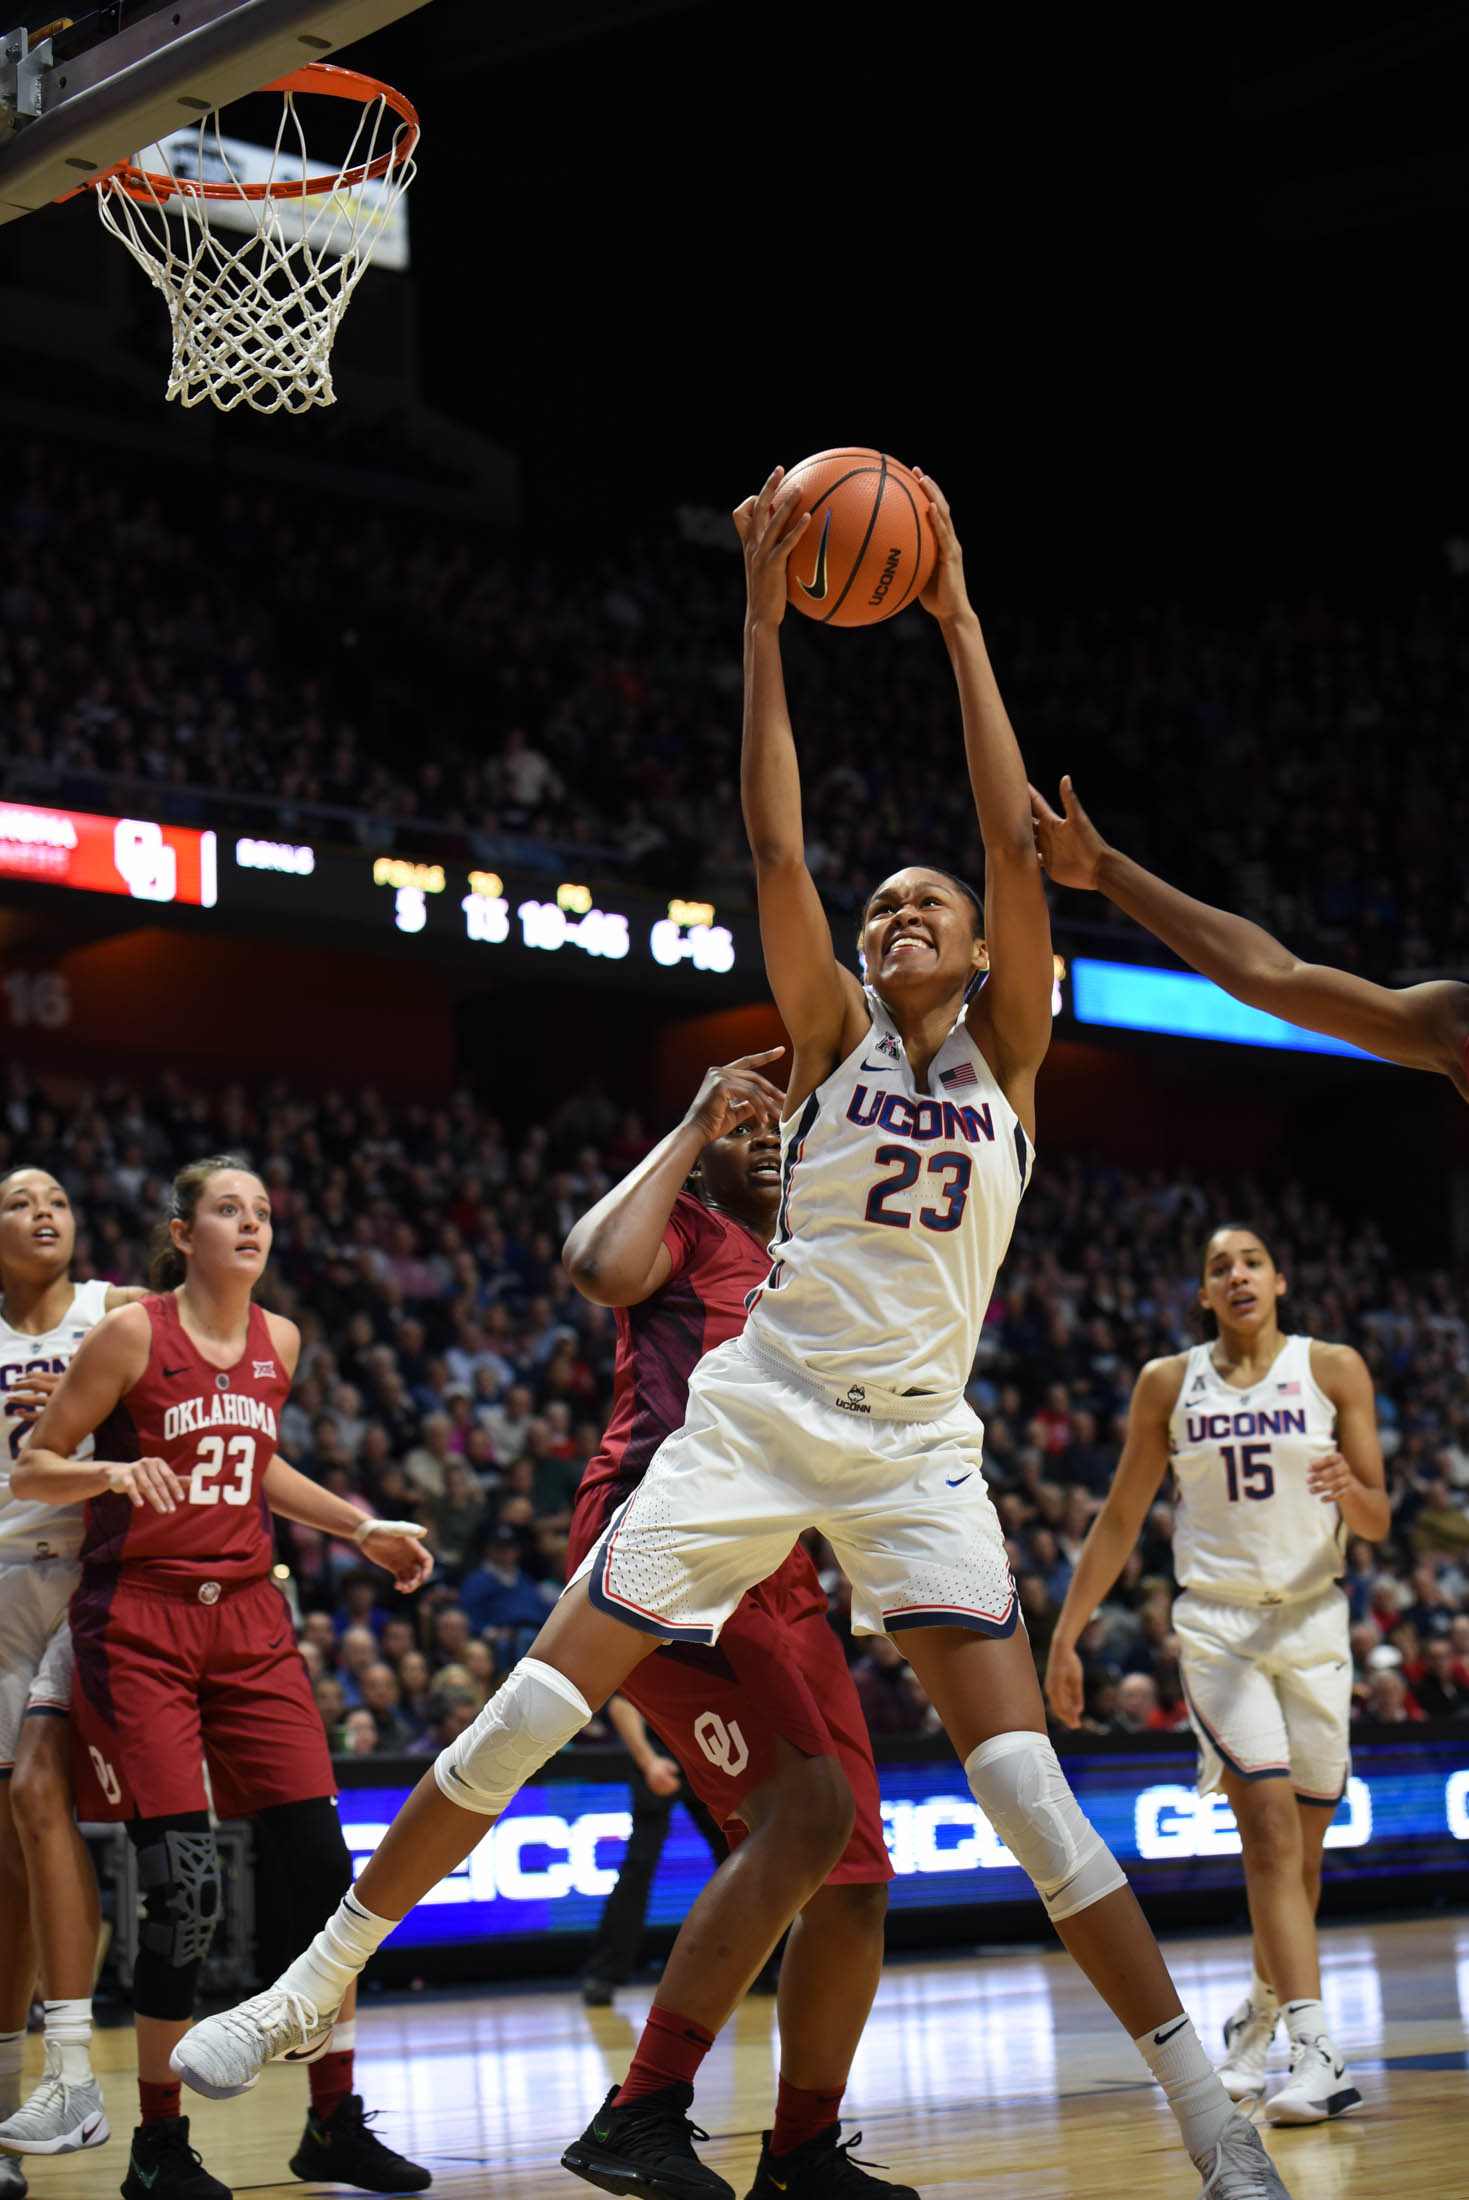 Azurá Stevens goes up for an offensive rebound against Oklahoma. She finishes the game with 20 points. (Charlotte Lao/The Daily Campus)